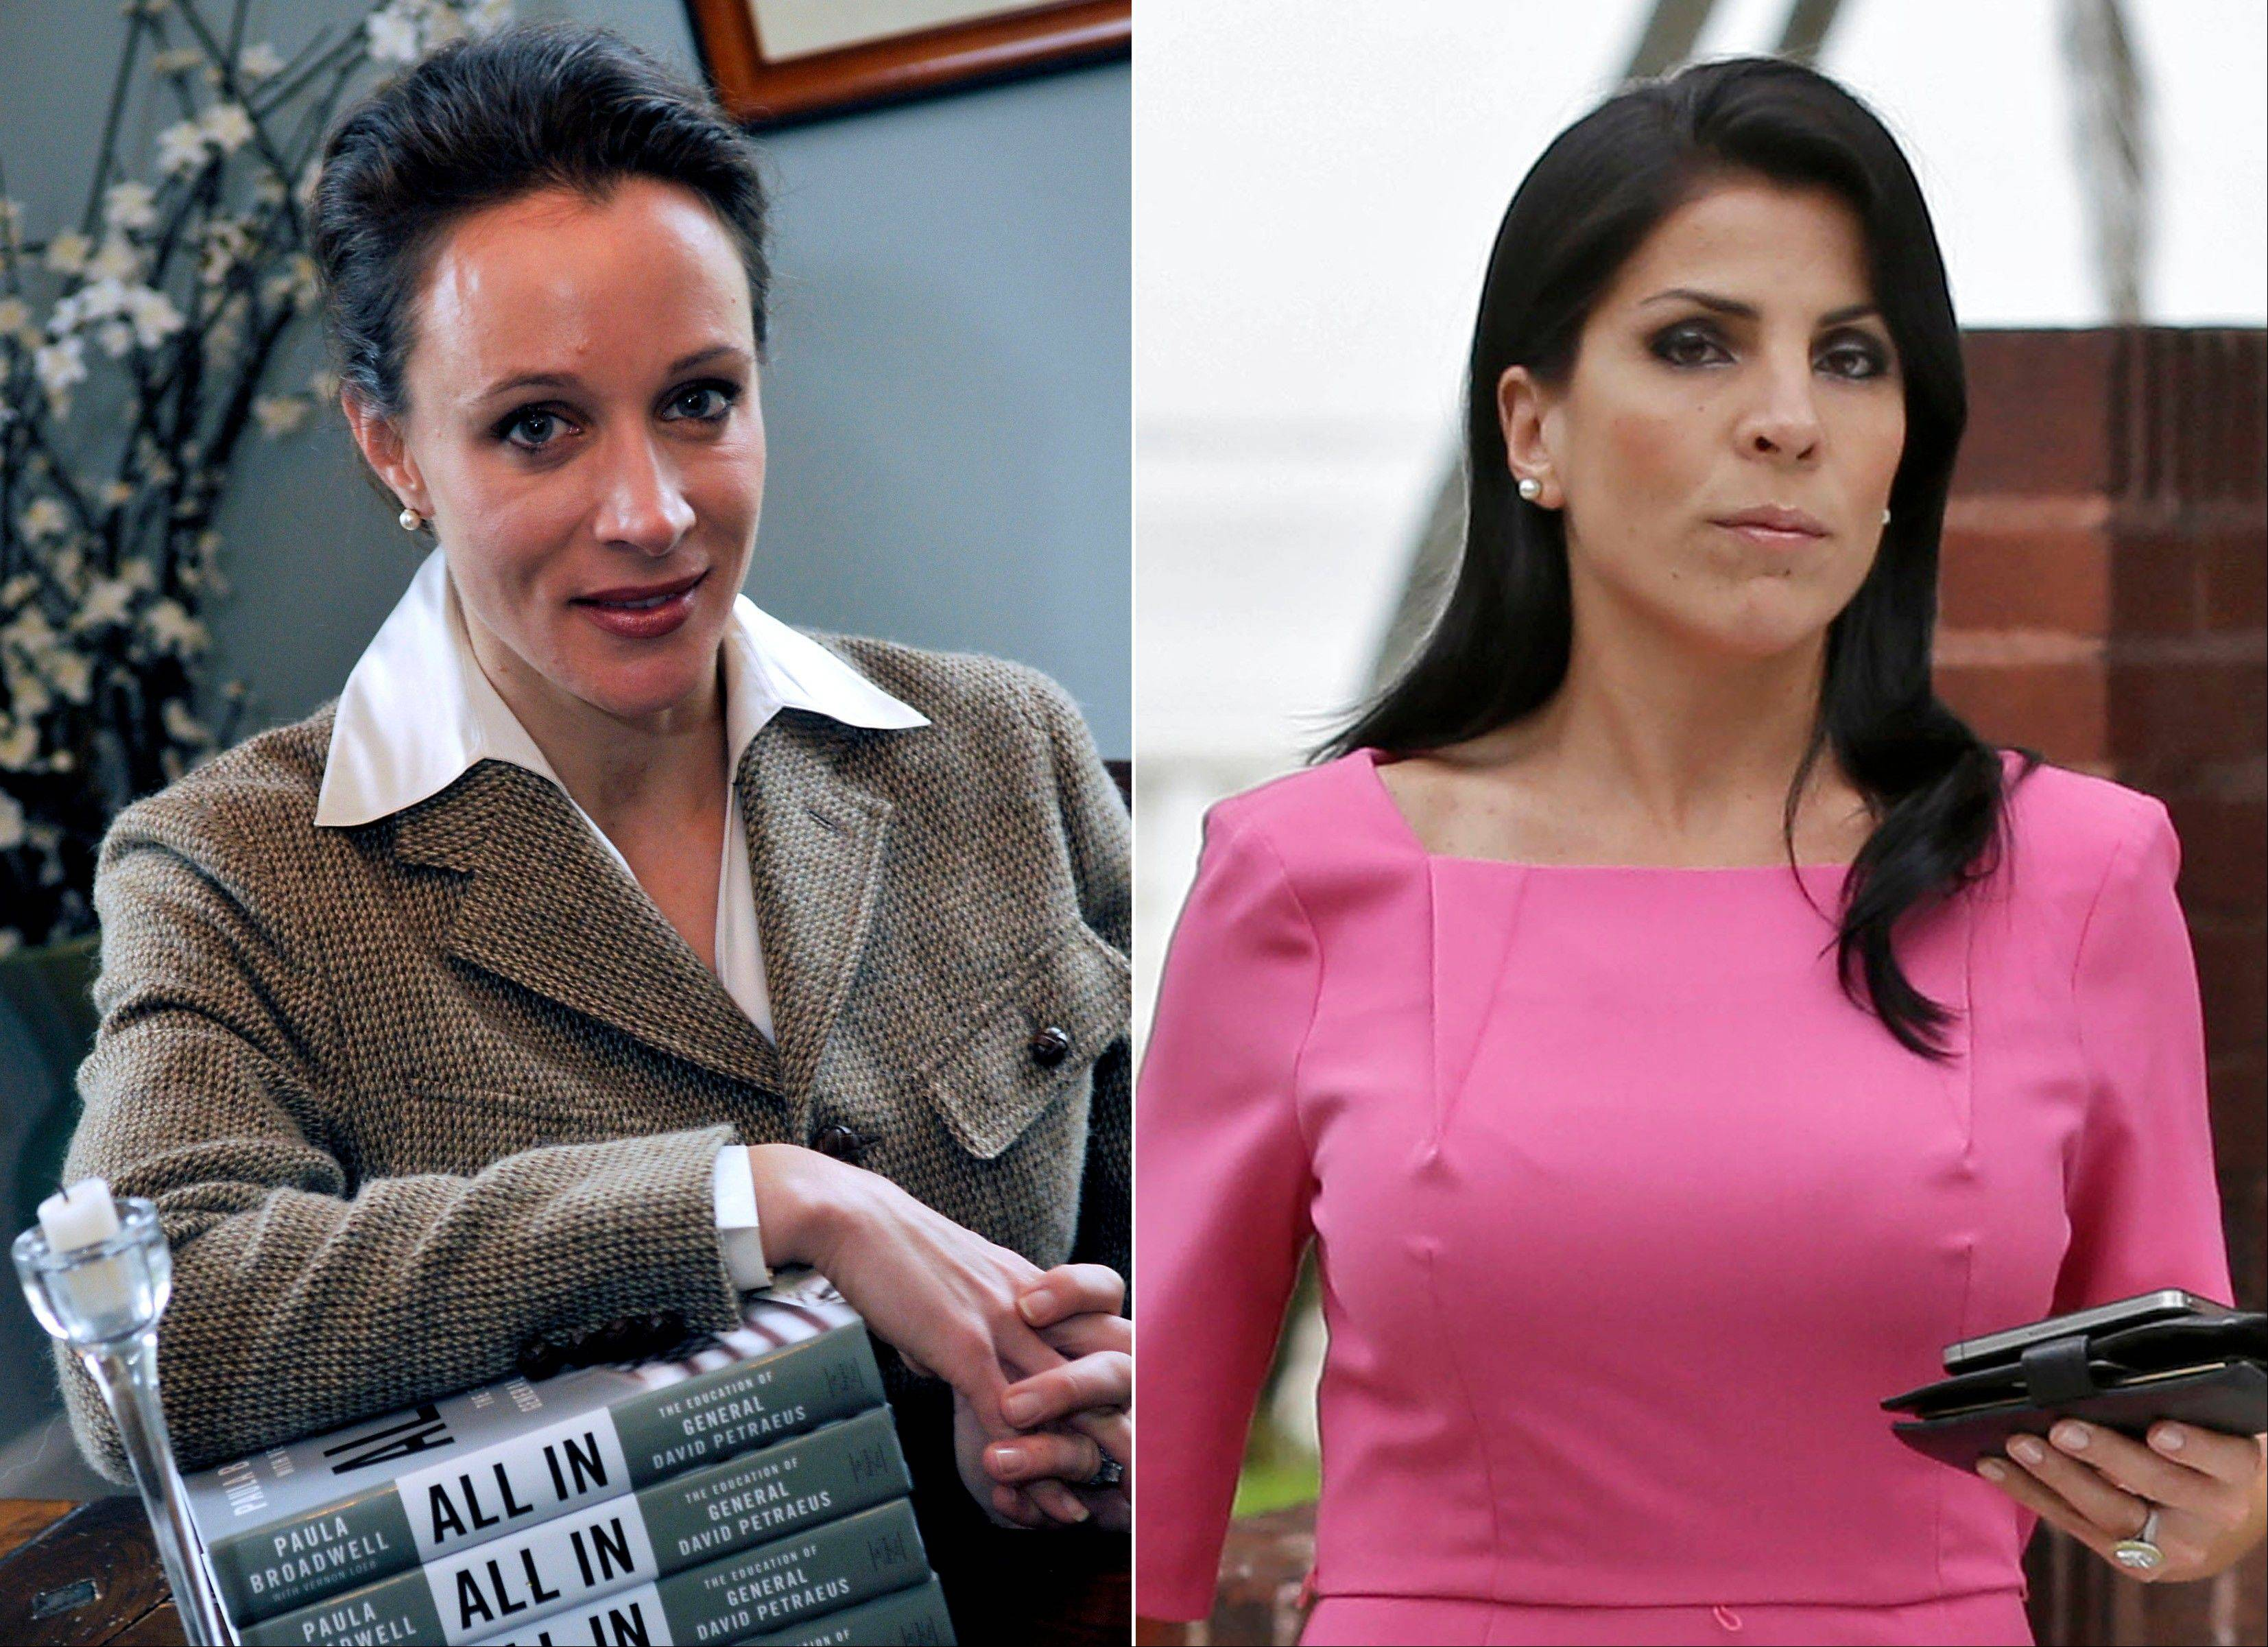 This combo made from file photos shows Gen. David Petraeus� biographer and paramour Paula Broadwell, left, and Florida socialite Jill Kelley. Broadwell and Kelley, the two women at the center of David Petraeus� downfall as CIA director, visited the White House separately on various occasions in what appear to be unrelated calls that did not result in meetings with President Barack Obama.